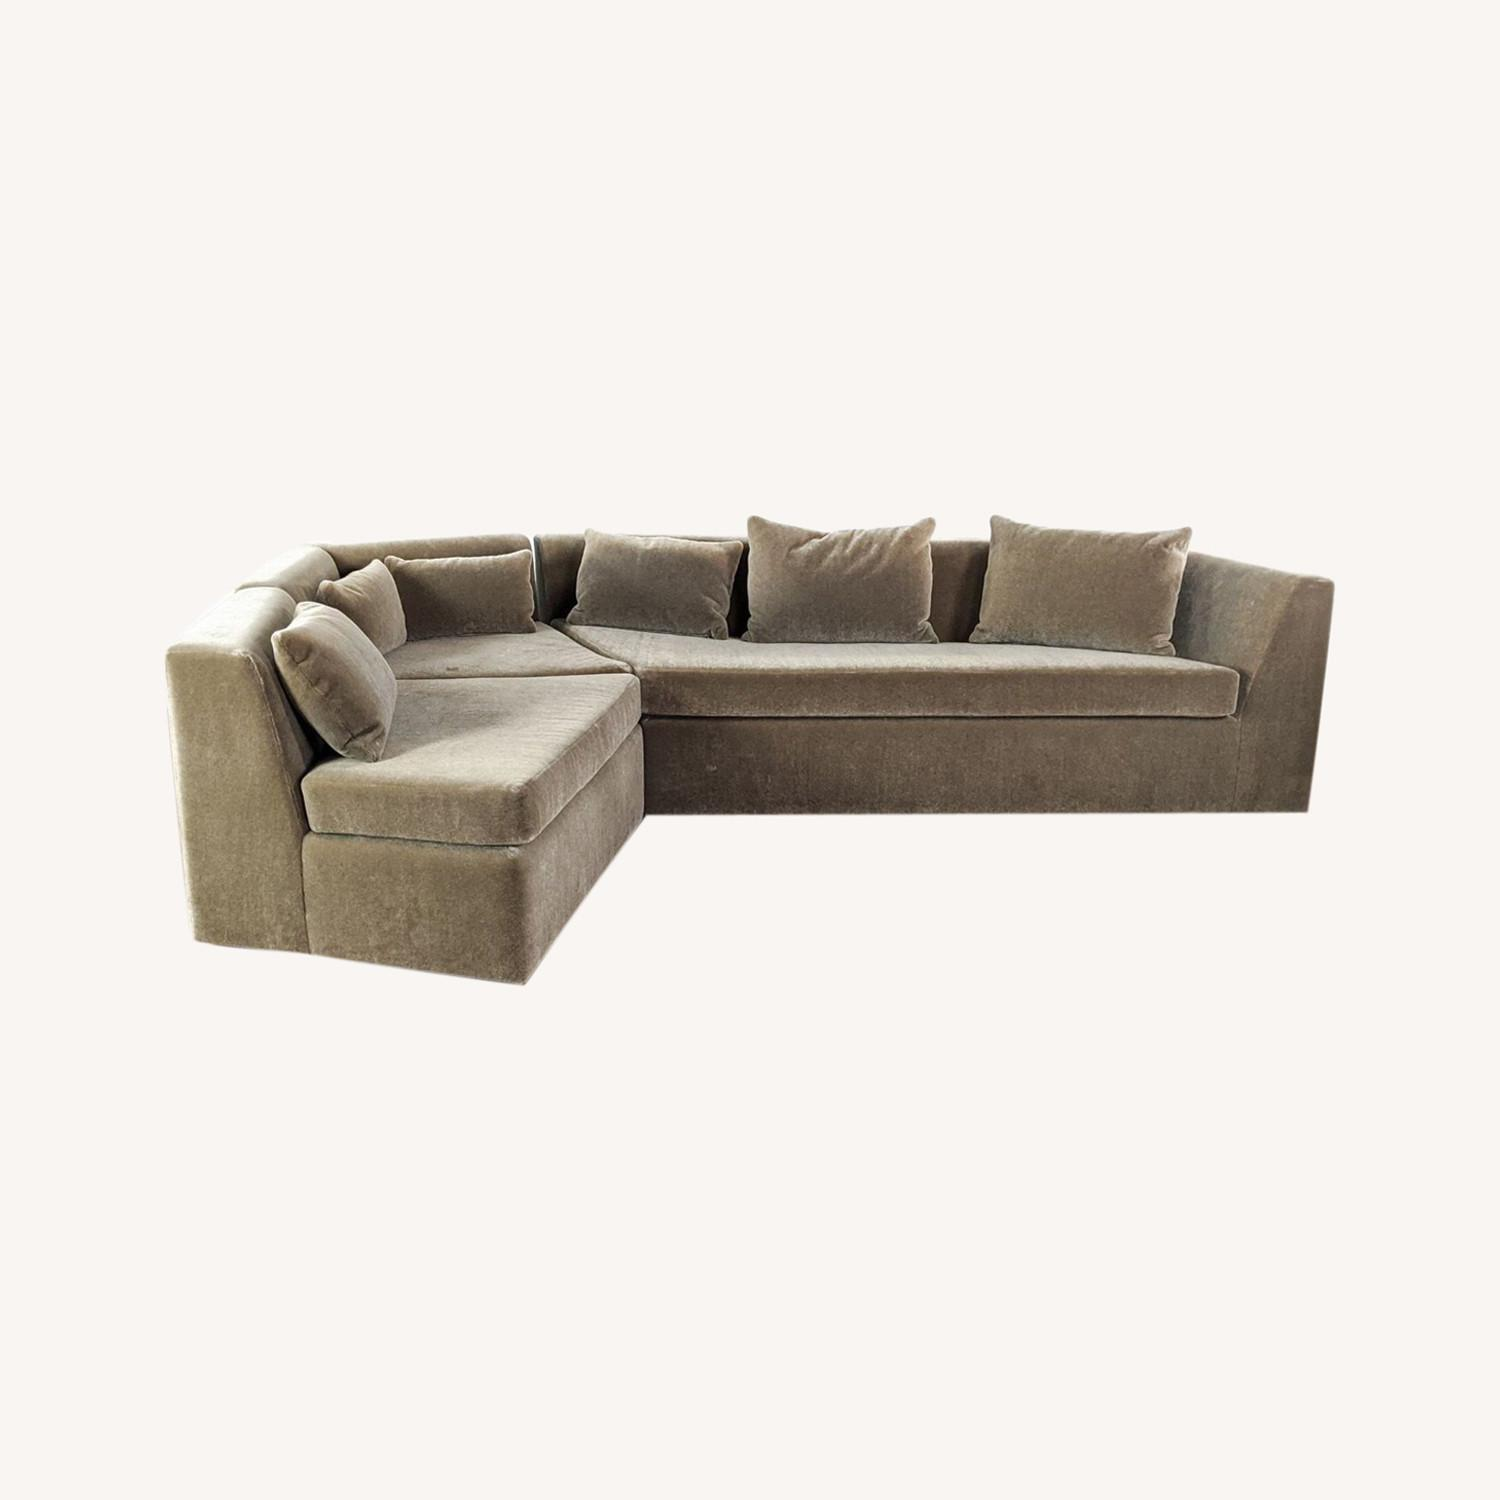 Phase Design Pangea Sectional Sofa in Gray Mohair - image-0